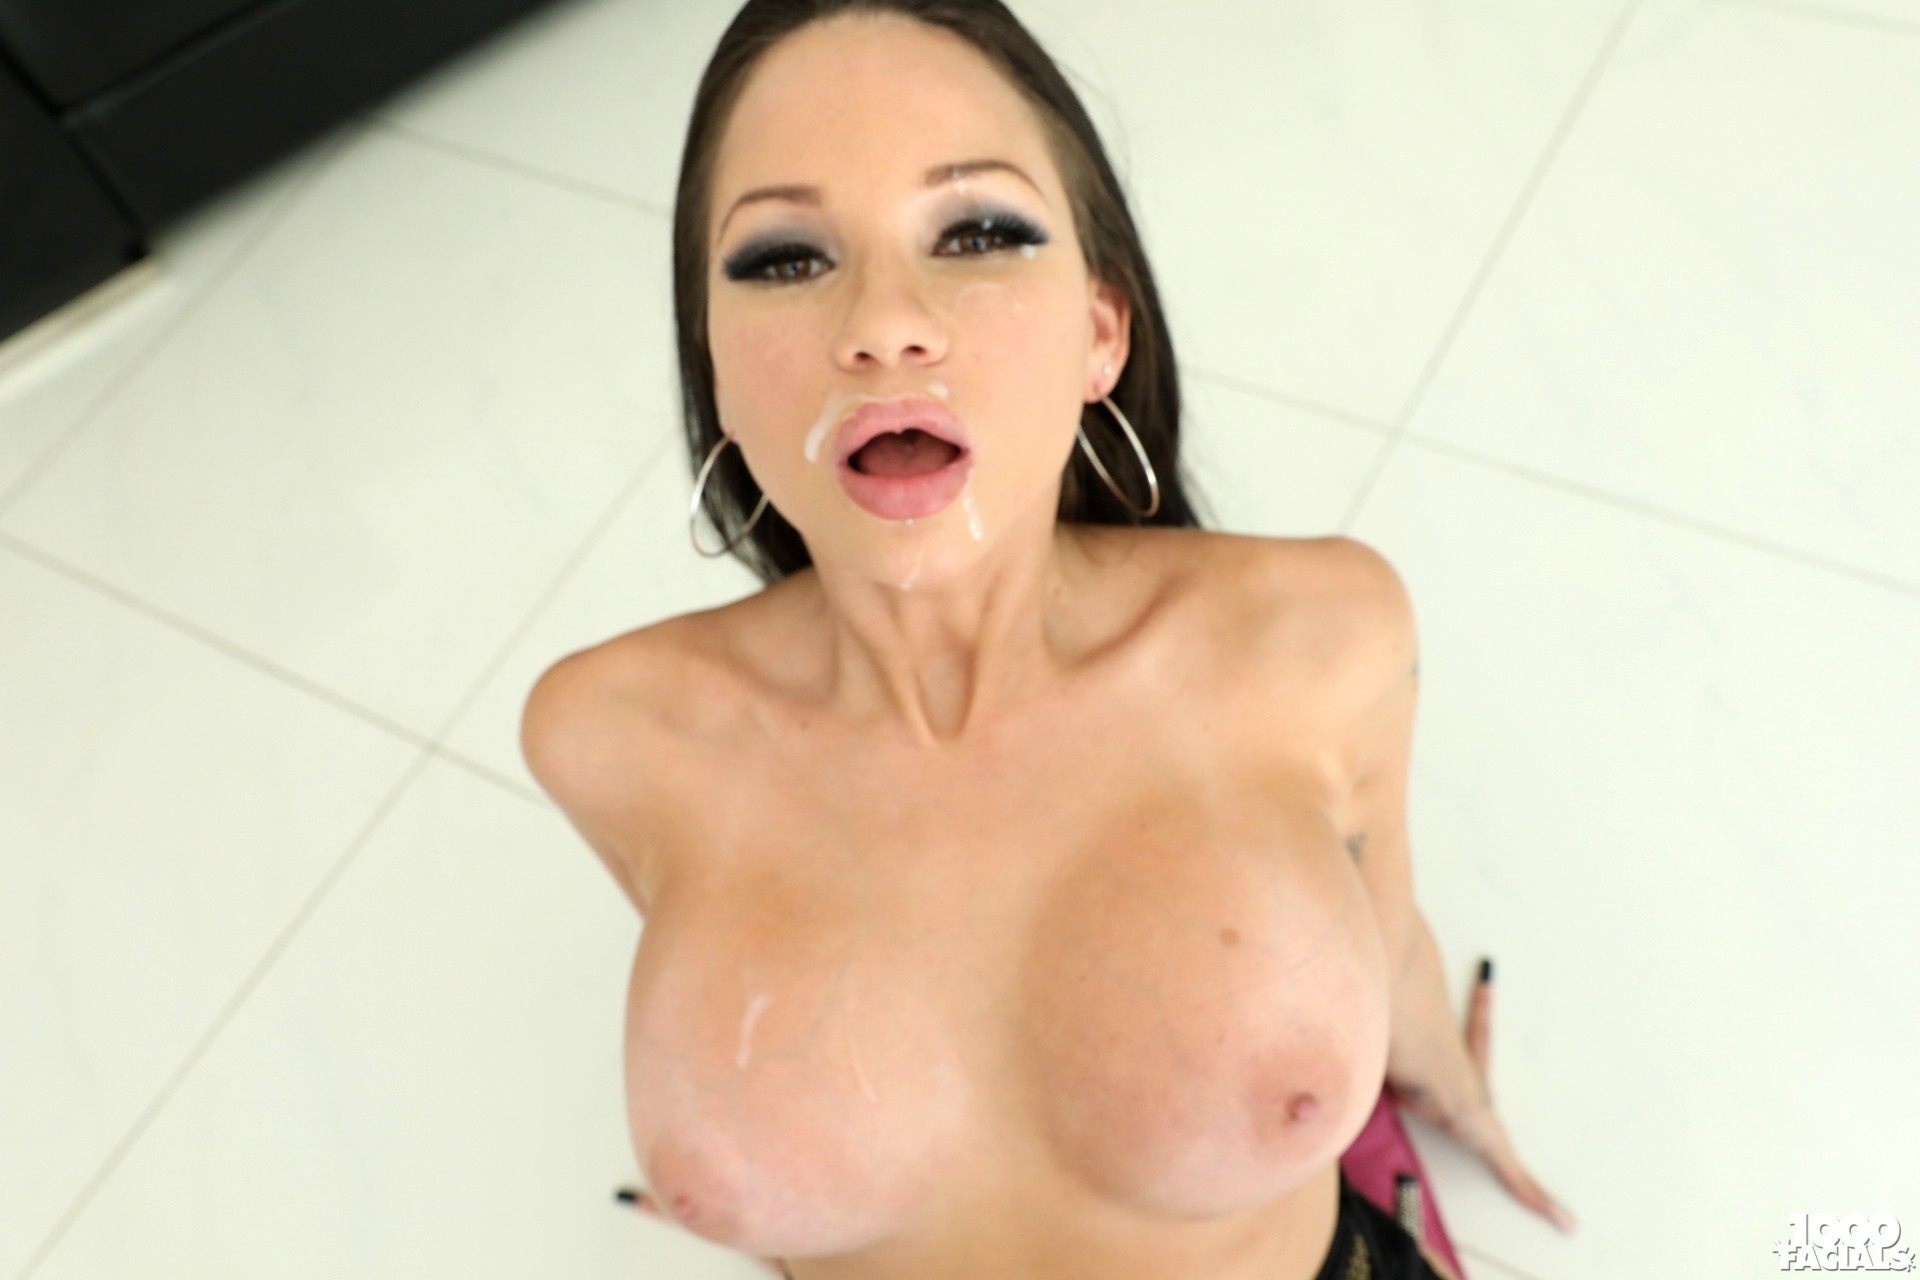 free hot chick porn